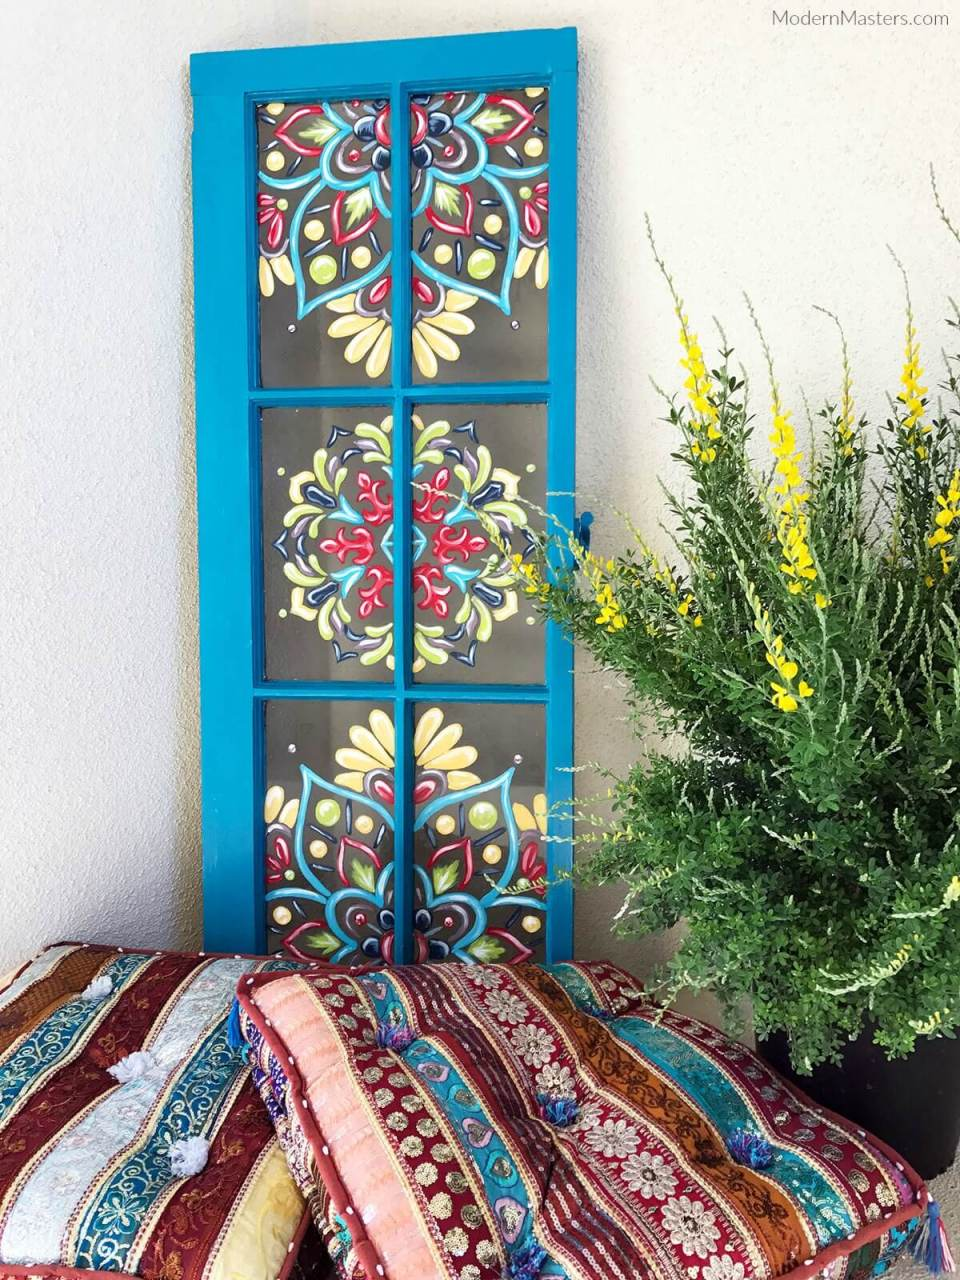 Tole Painting on Bright Blue Window Frame   DIY Painted Garden Decoration Ideas